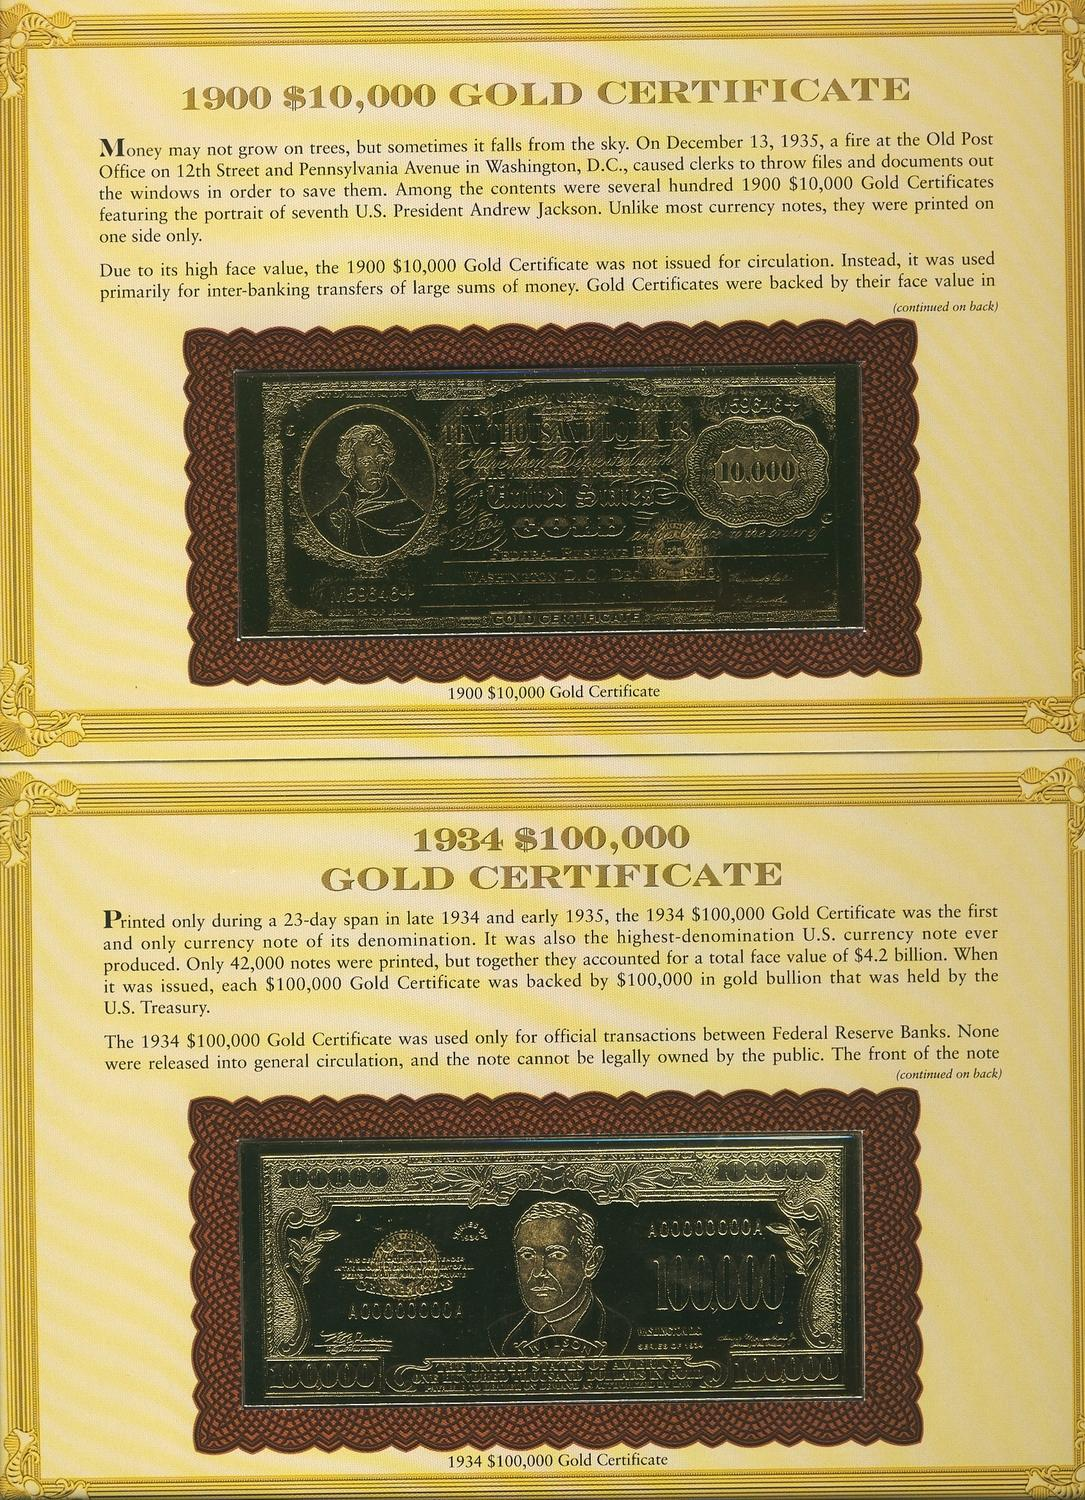 1934 100000 1900 10000 gold certificate replicas gold image 1 1934 100000 1900 10000 gold certificate replicas gold plated and issued 1betcityfo Gallery